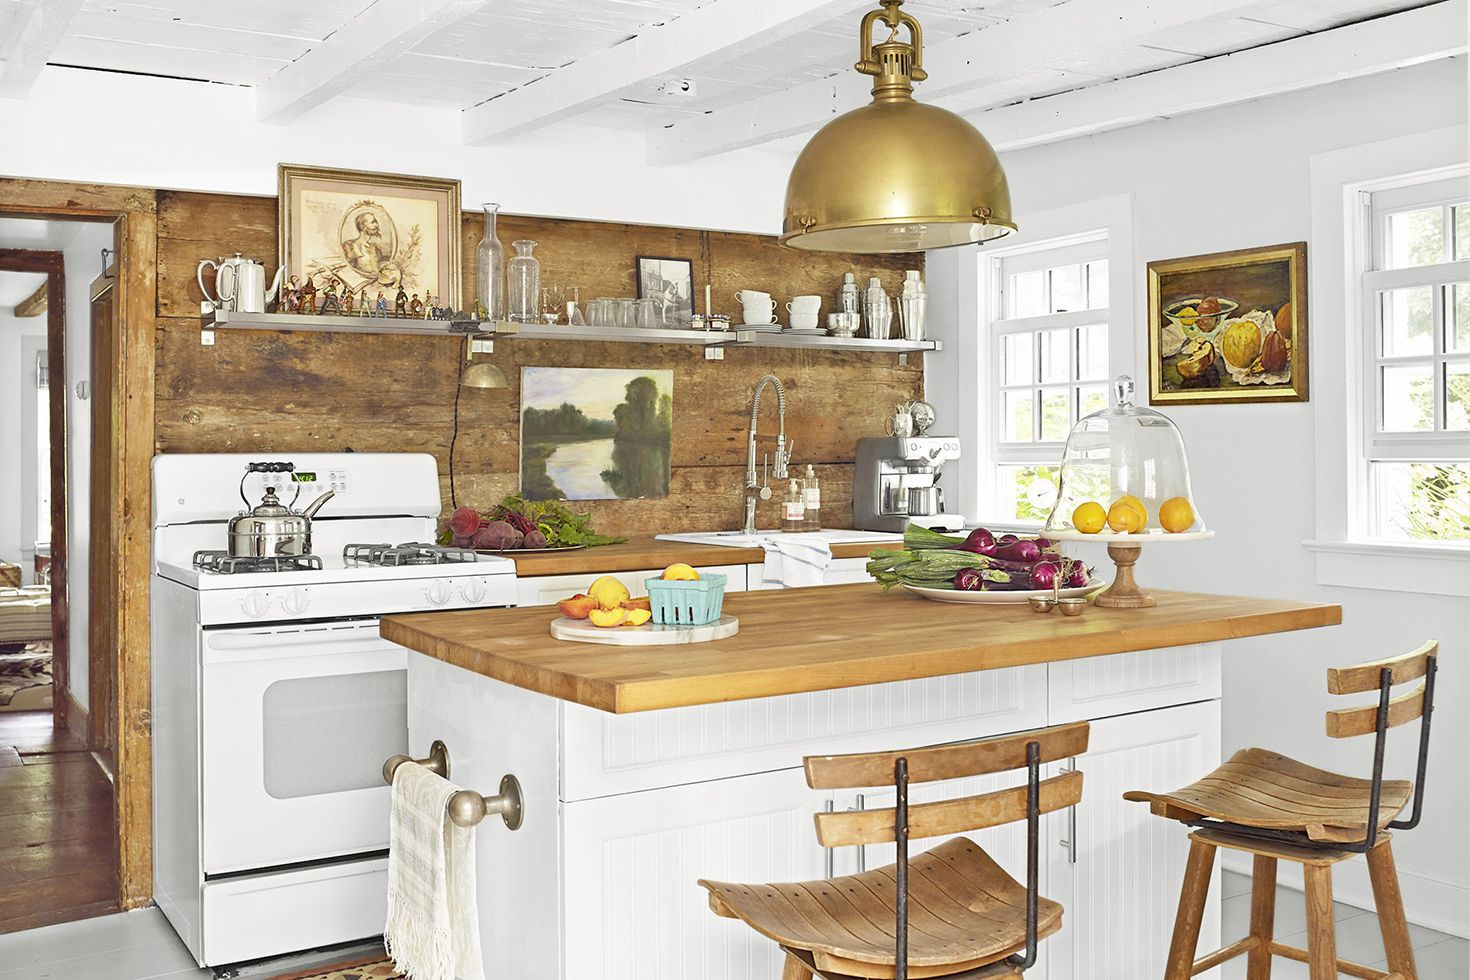 30 Kitchen Island Ideas For A Cook Wanna Be Diy Home Art